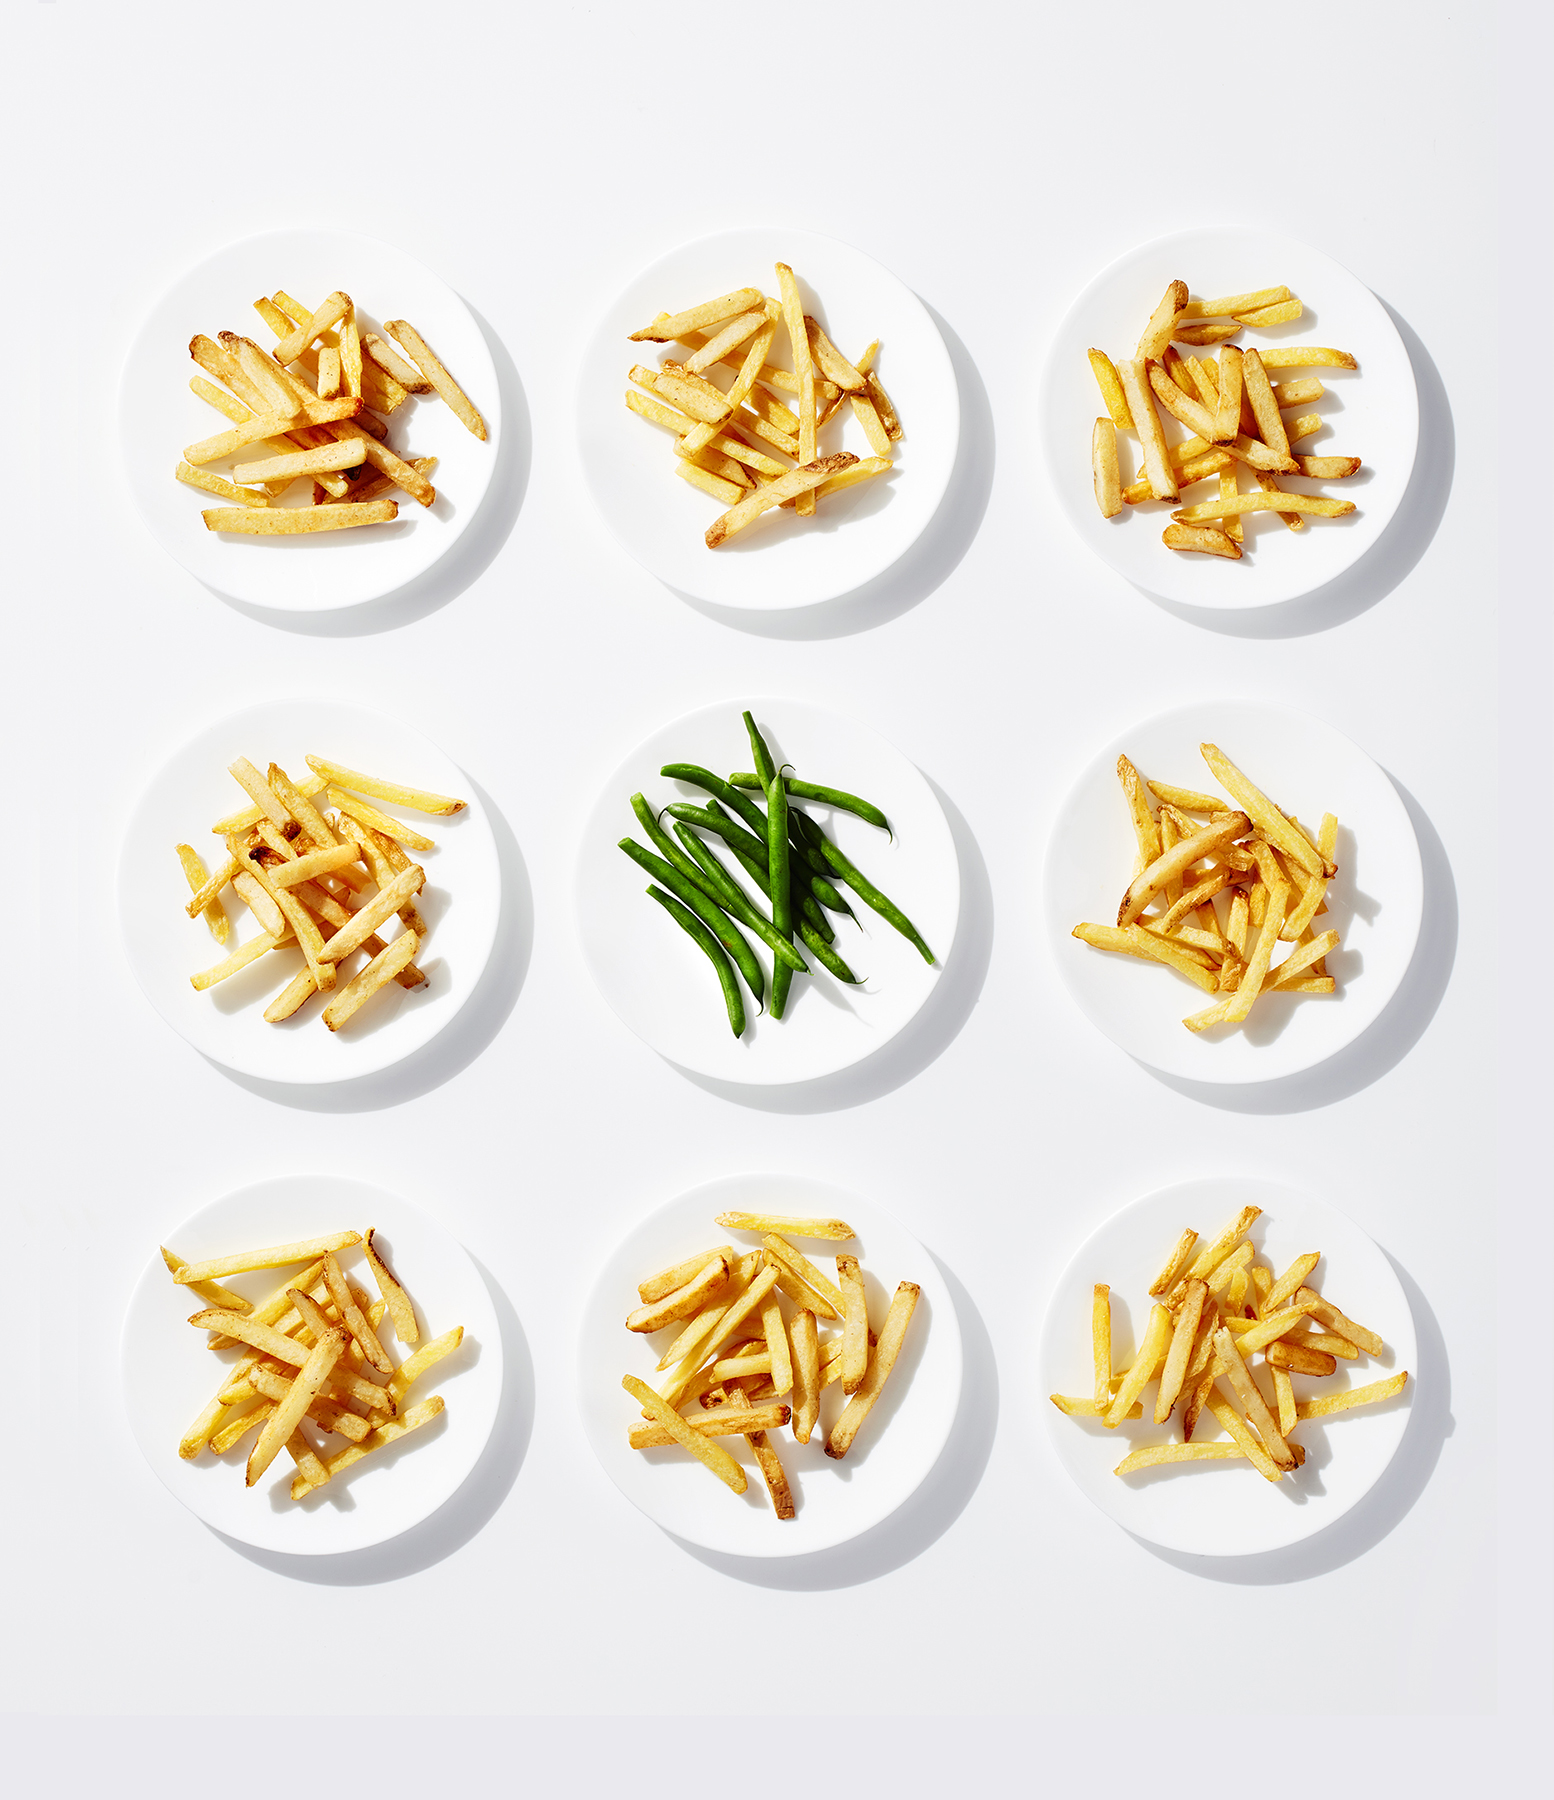 French fries and green beans